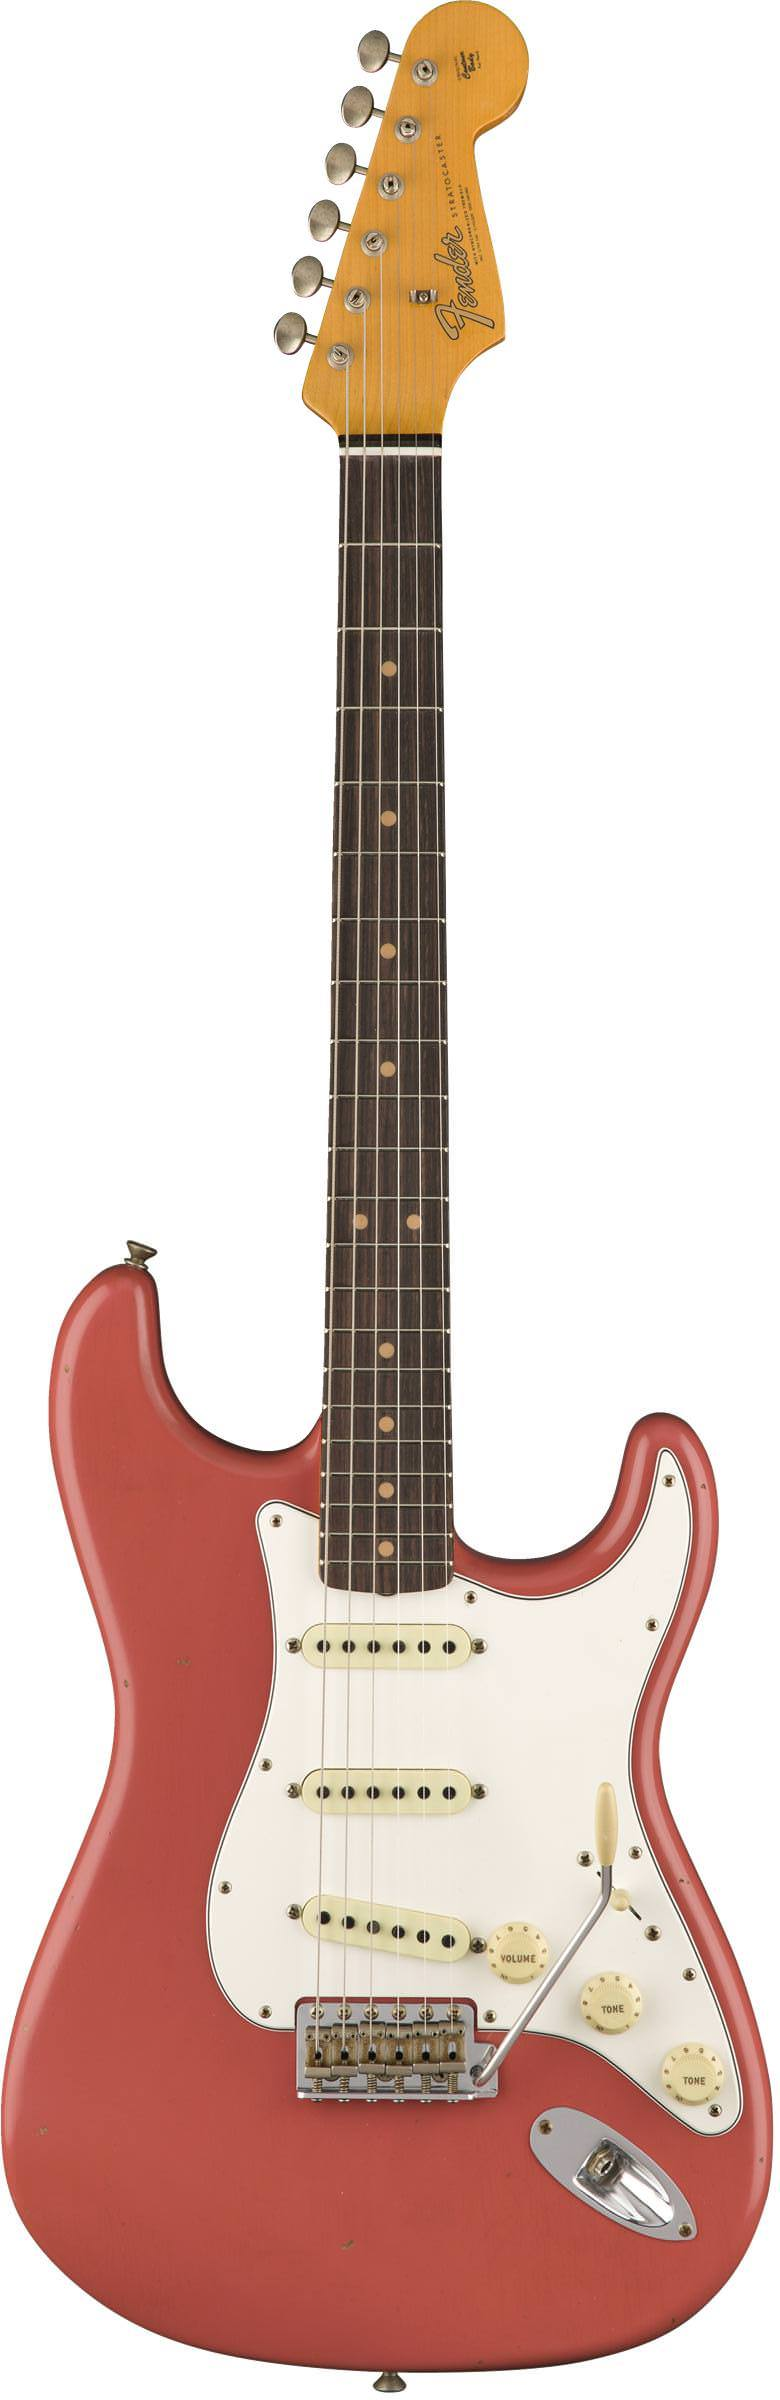 FENDER 2018 JOURNEYMAN RELIC® 1964 STRATOCASTER® - SUPER FADED/AGED FIESTA RED